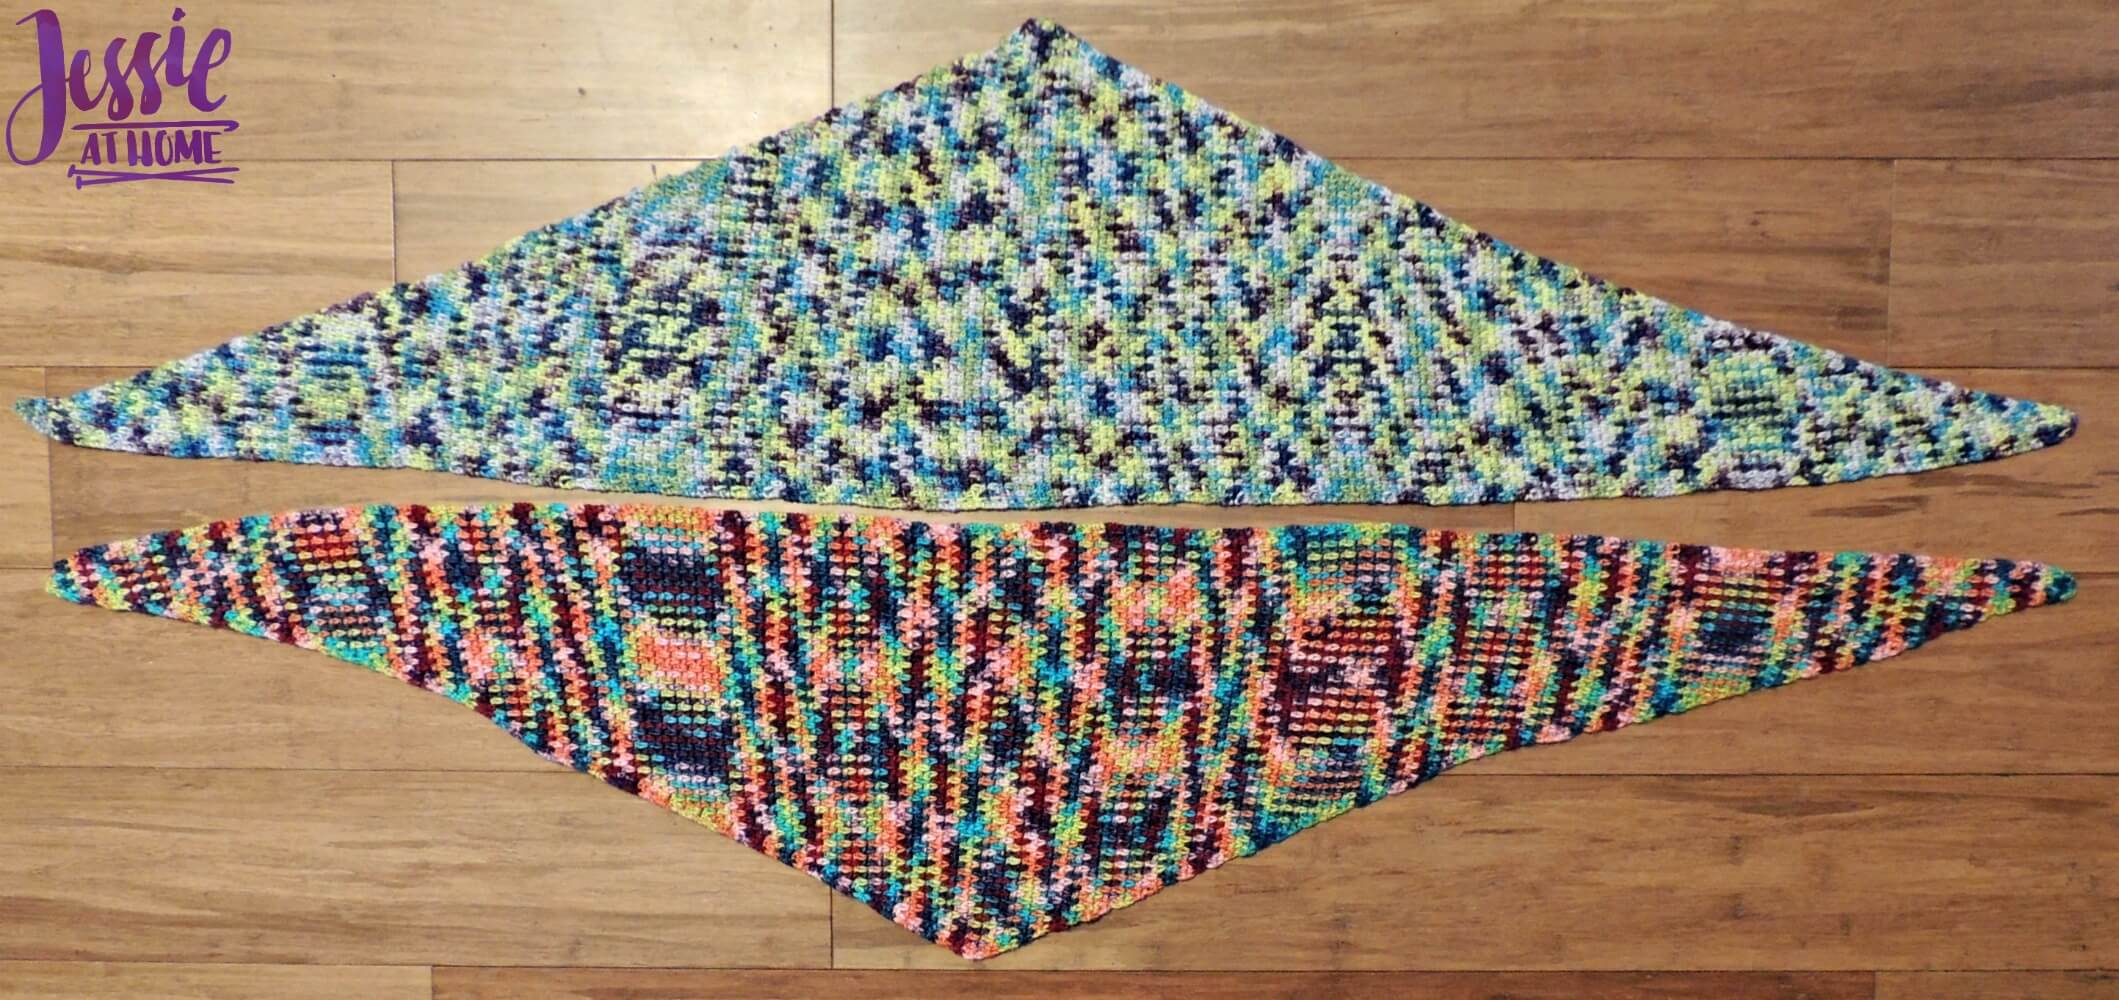 Little One Wraplet - free crochet pattern by Jessie At Home - 4